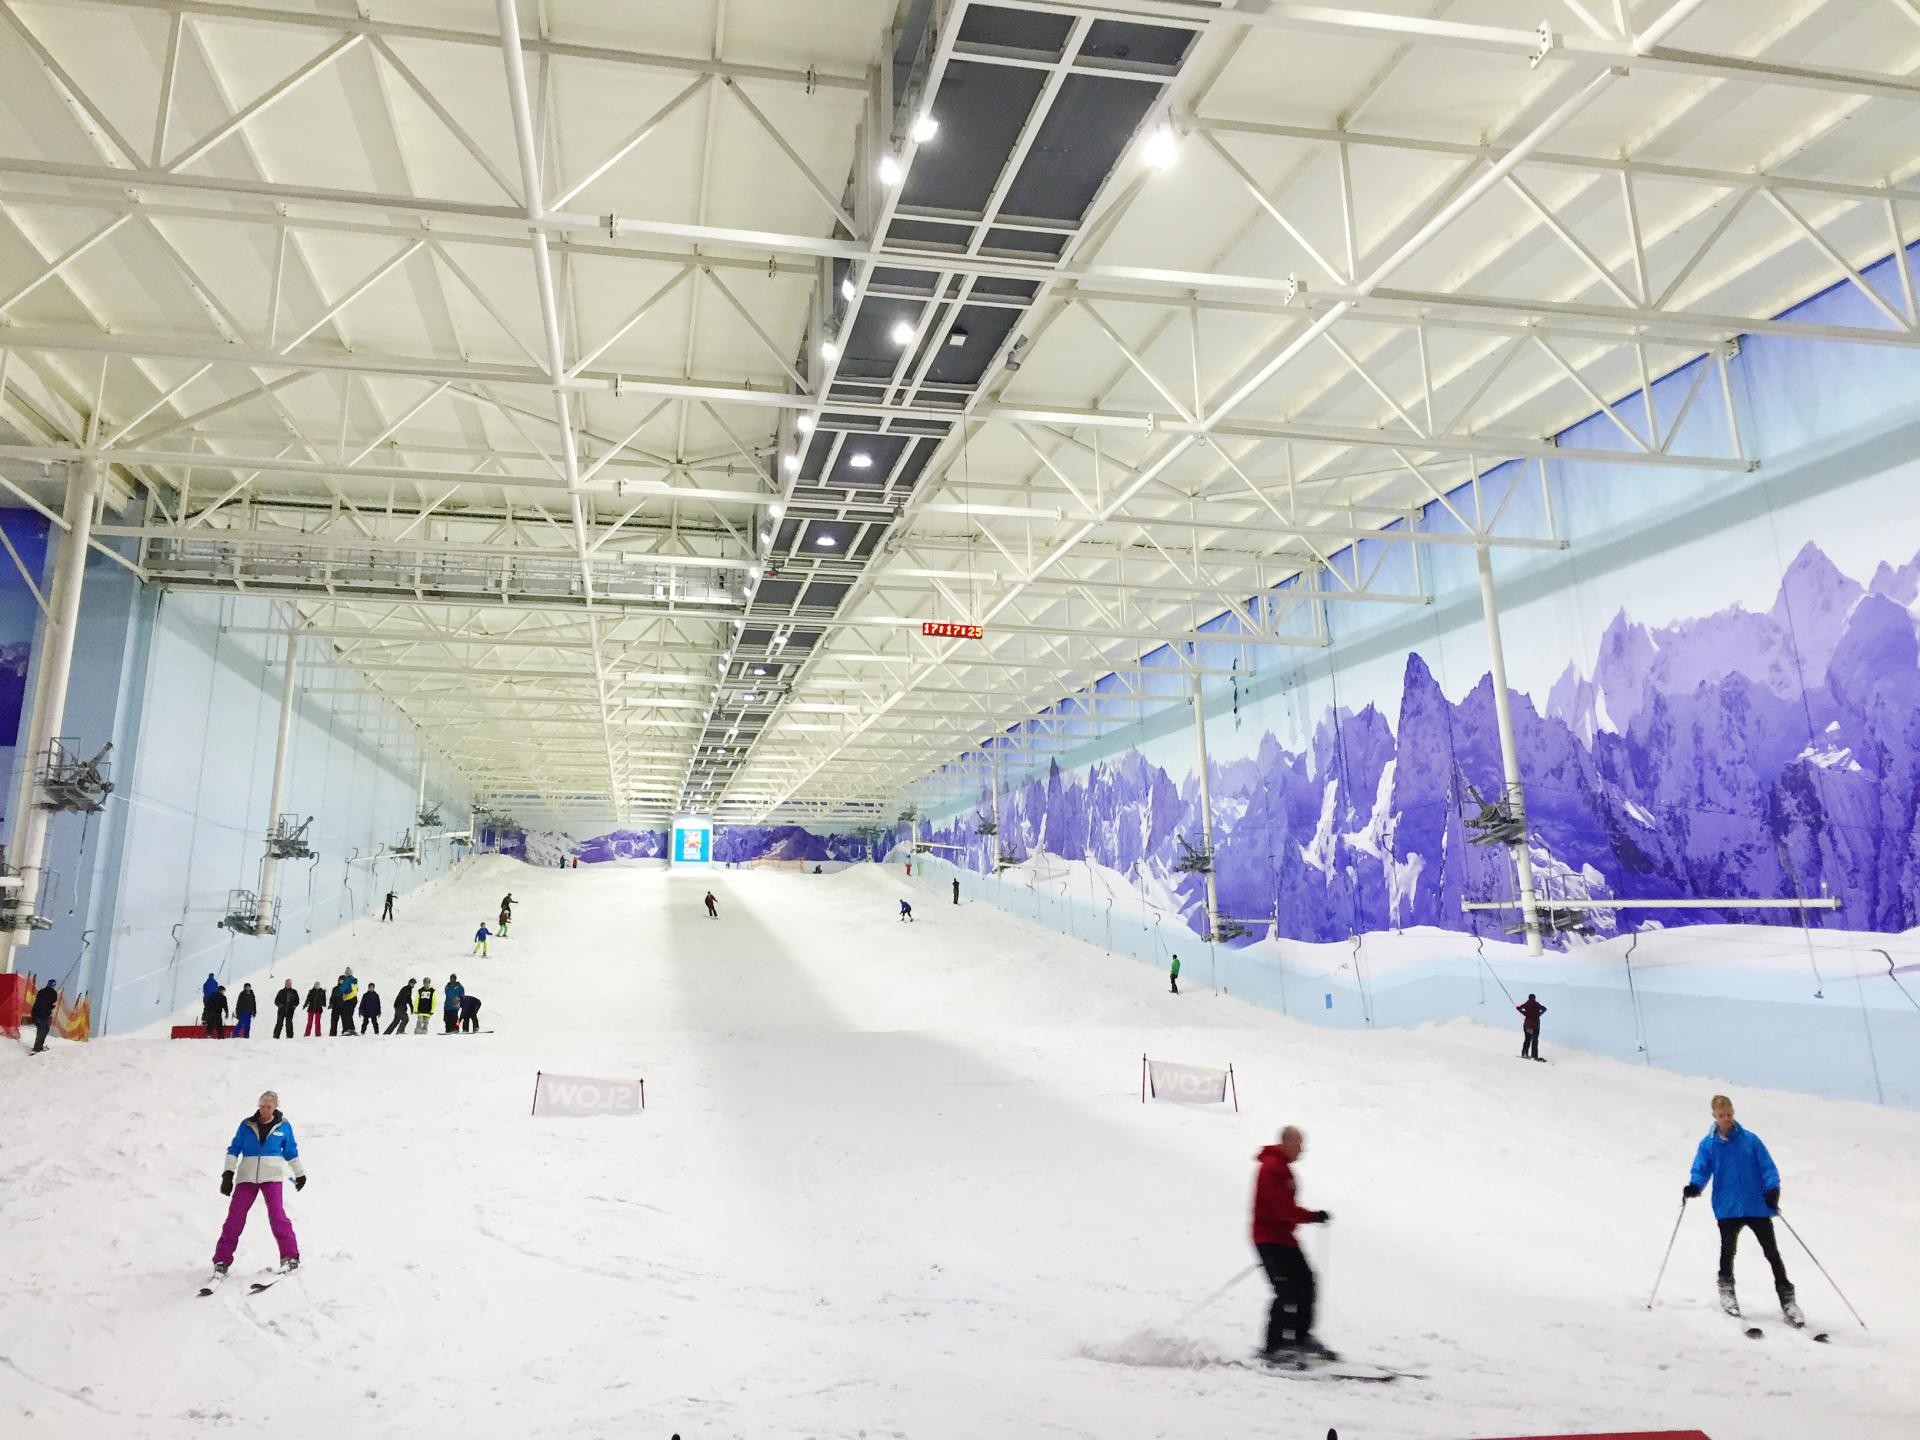 Learning to ski at Chill Factore, Manchester